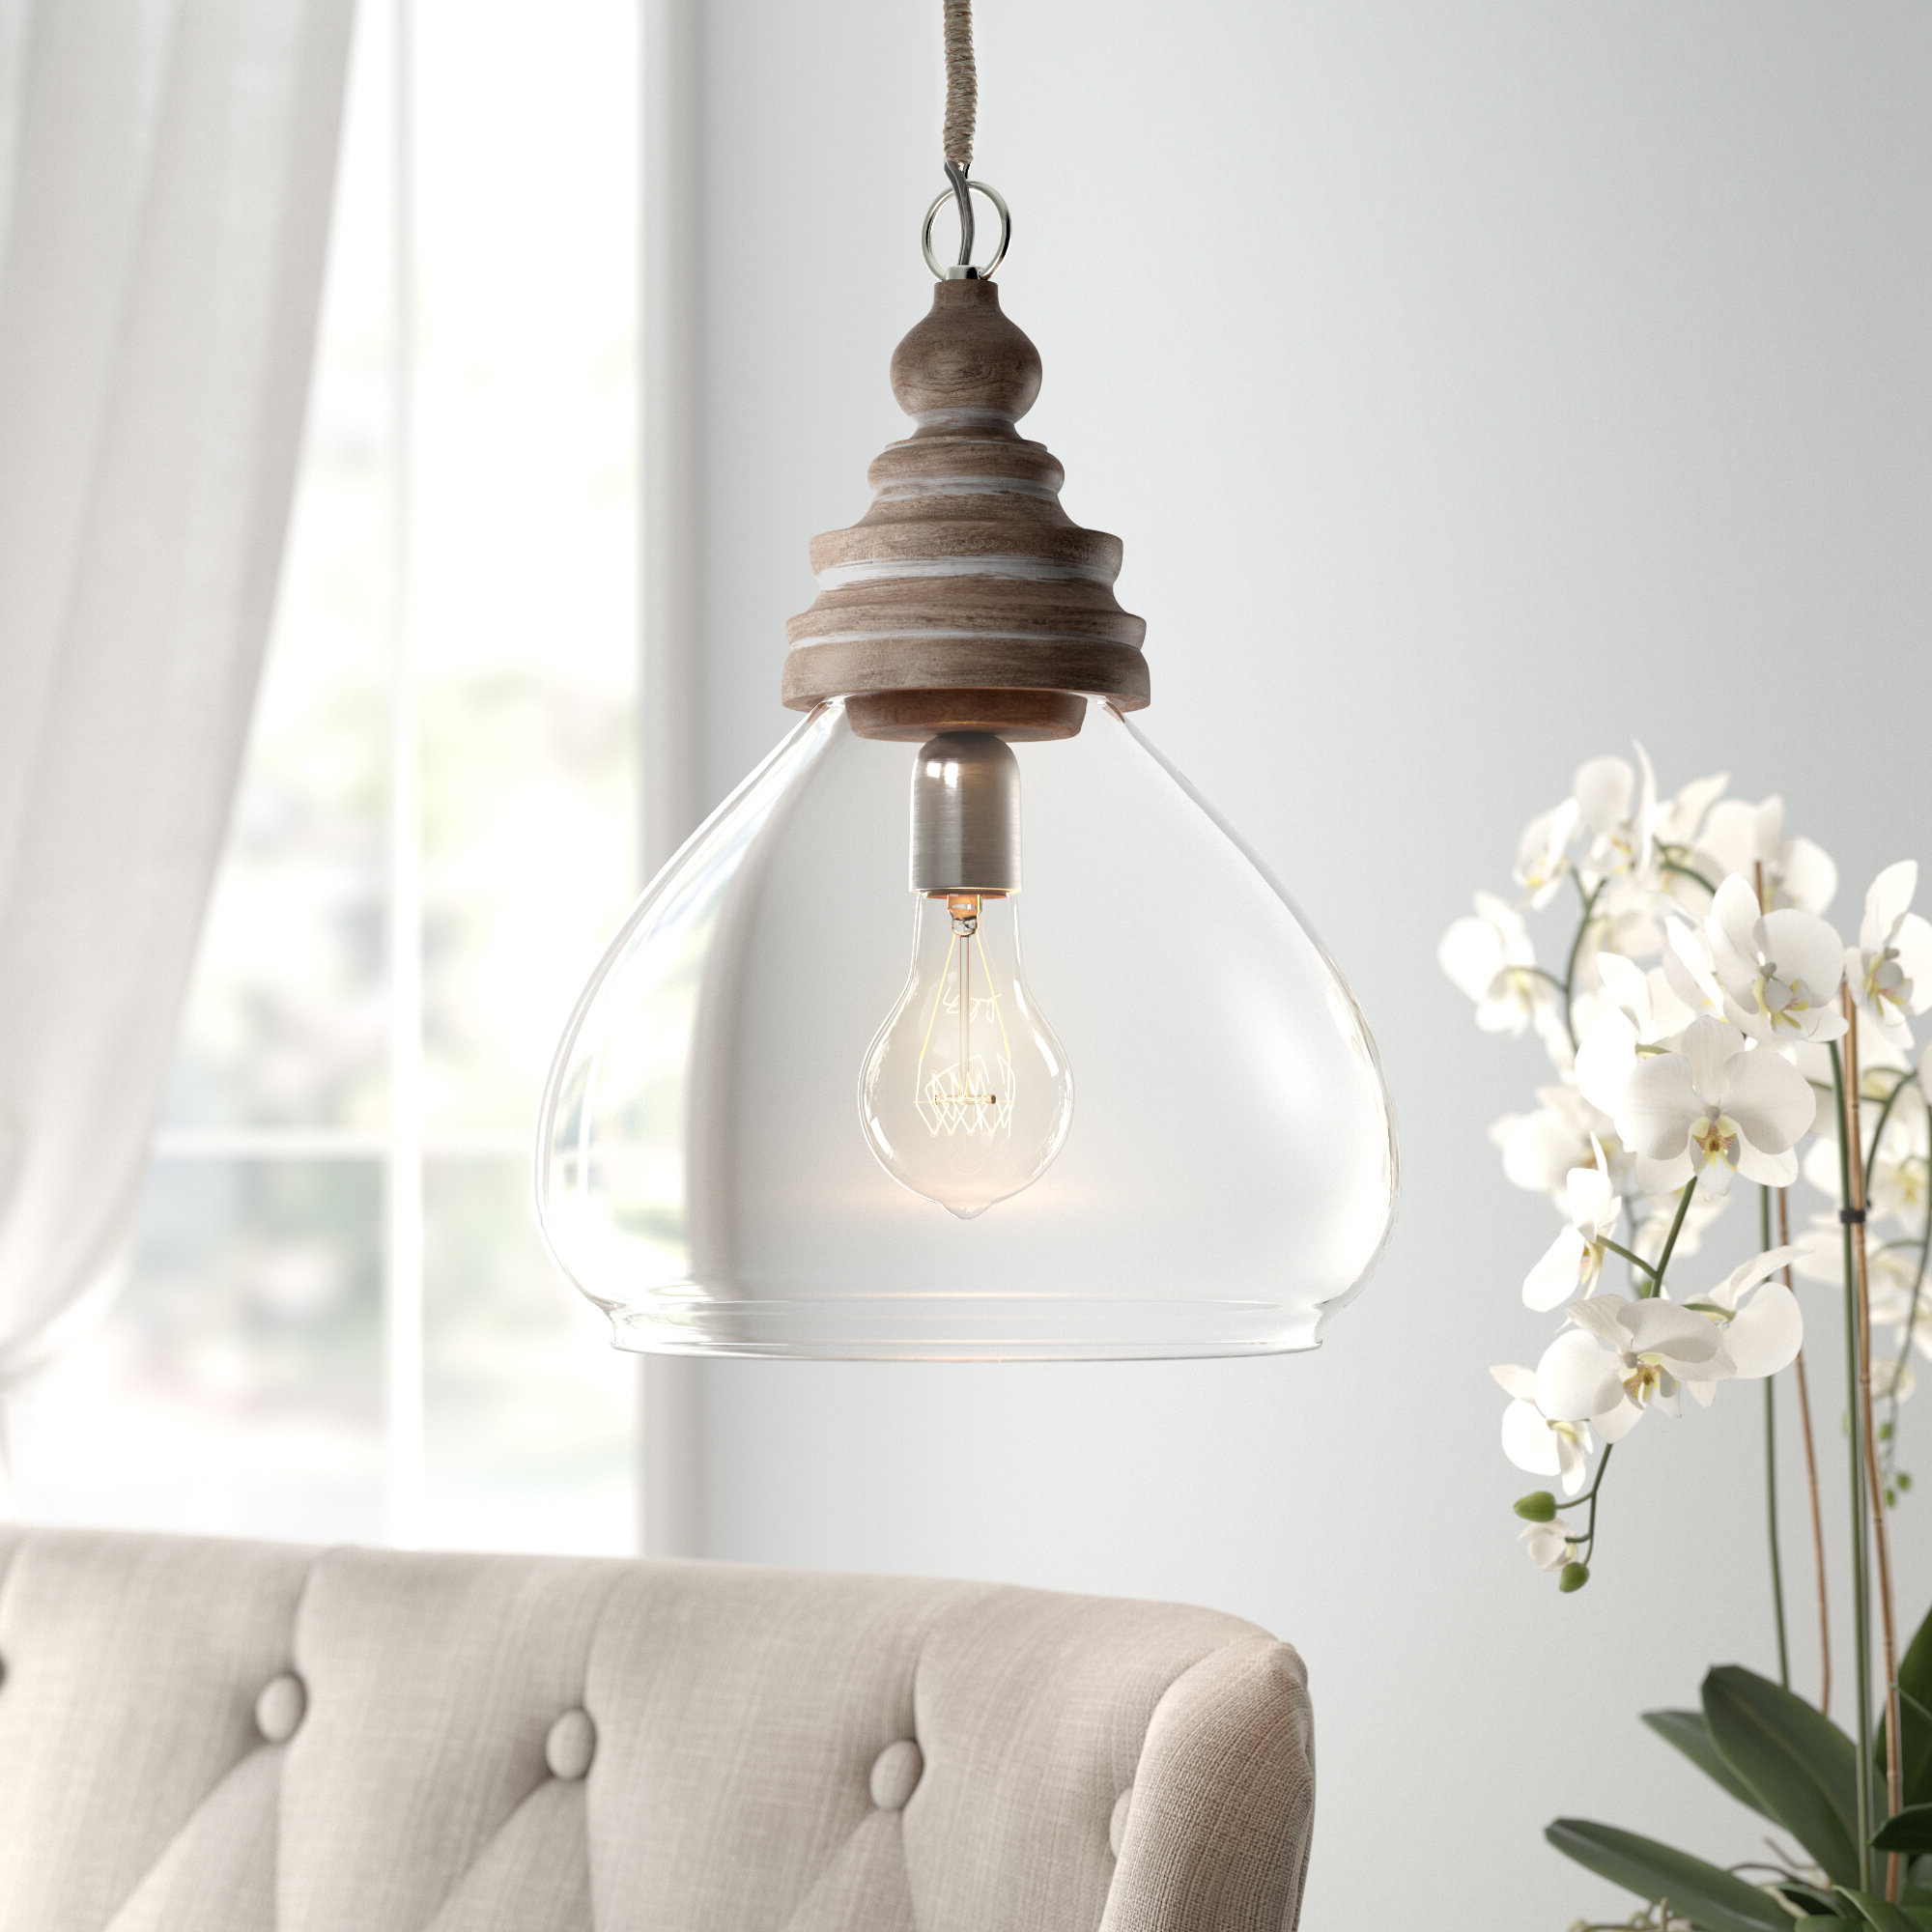 Trendy Monadnock 1 Light Single Dome Pendants Intended For Brisa 1 Light Single Dome Pendant (View 16 of 20)